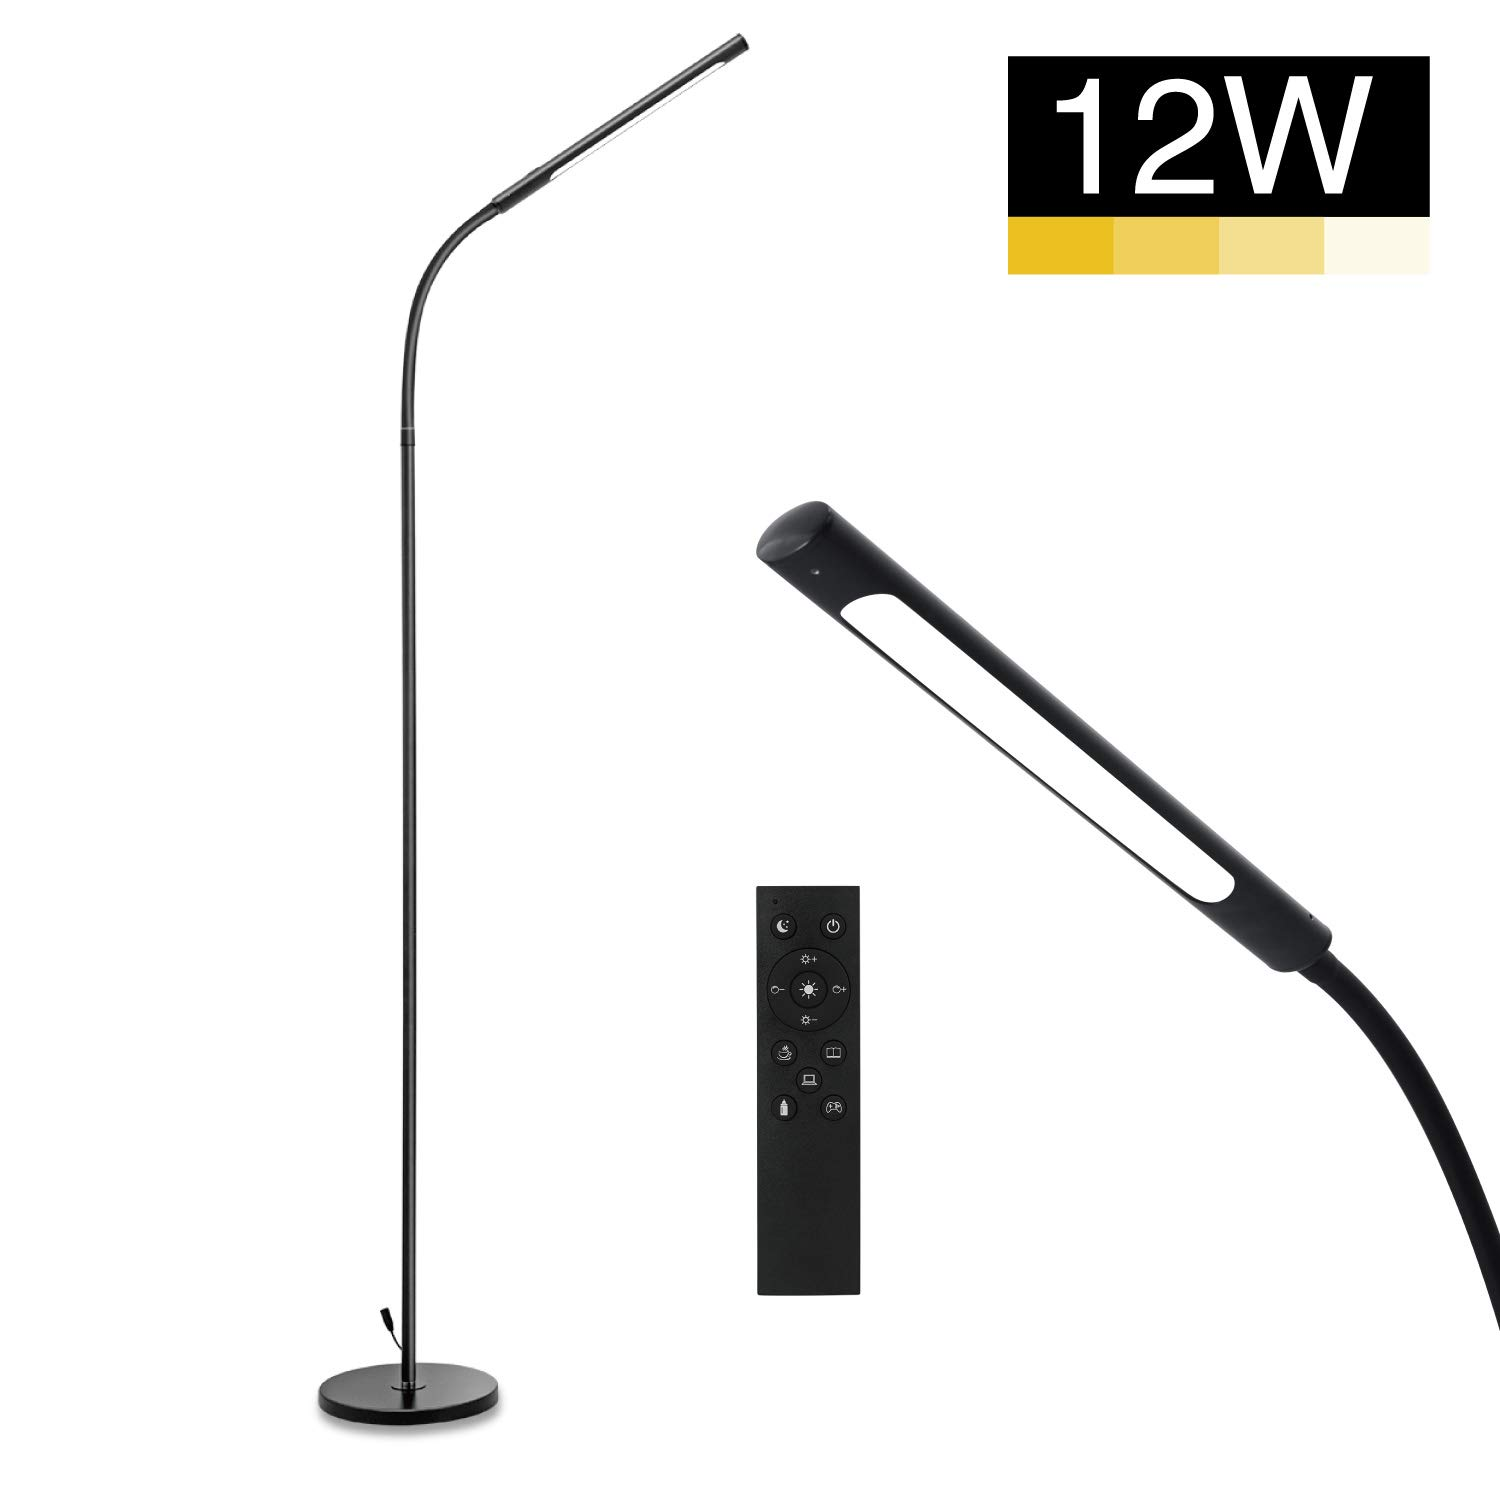 IMIGY 12W Floor Lamp, 600 Lumens Dimmable Flexible Gooseneck Standing LED Lamp, 4 Color Modes, Stepless Brightness Dimmable, Eye-Care Touch & Remote Control for Living Room, Bedroom, Office, Black